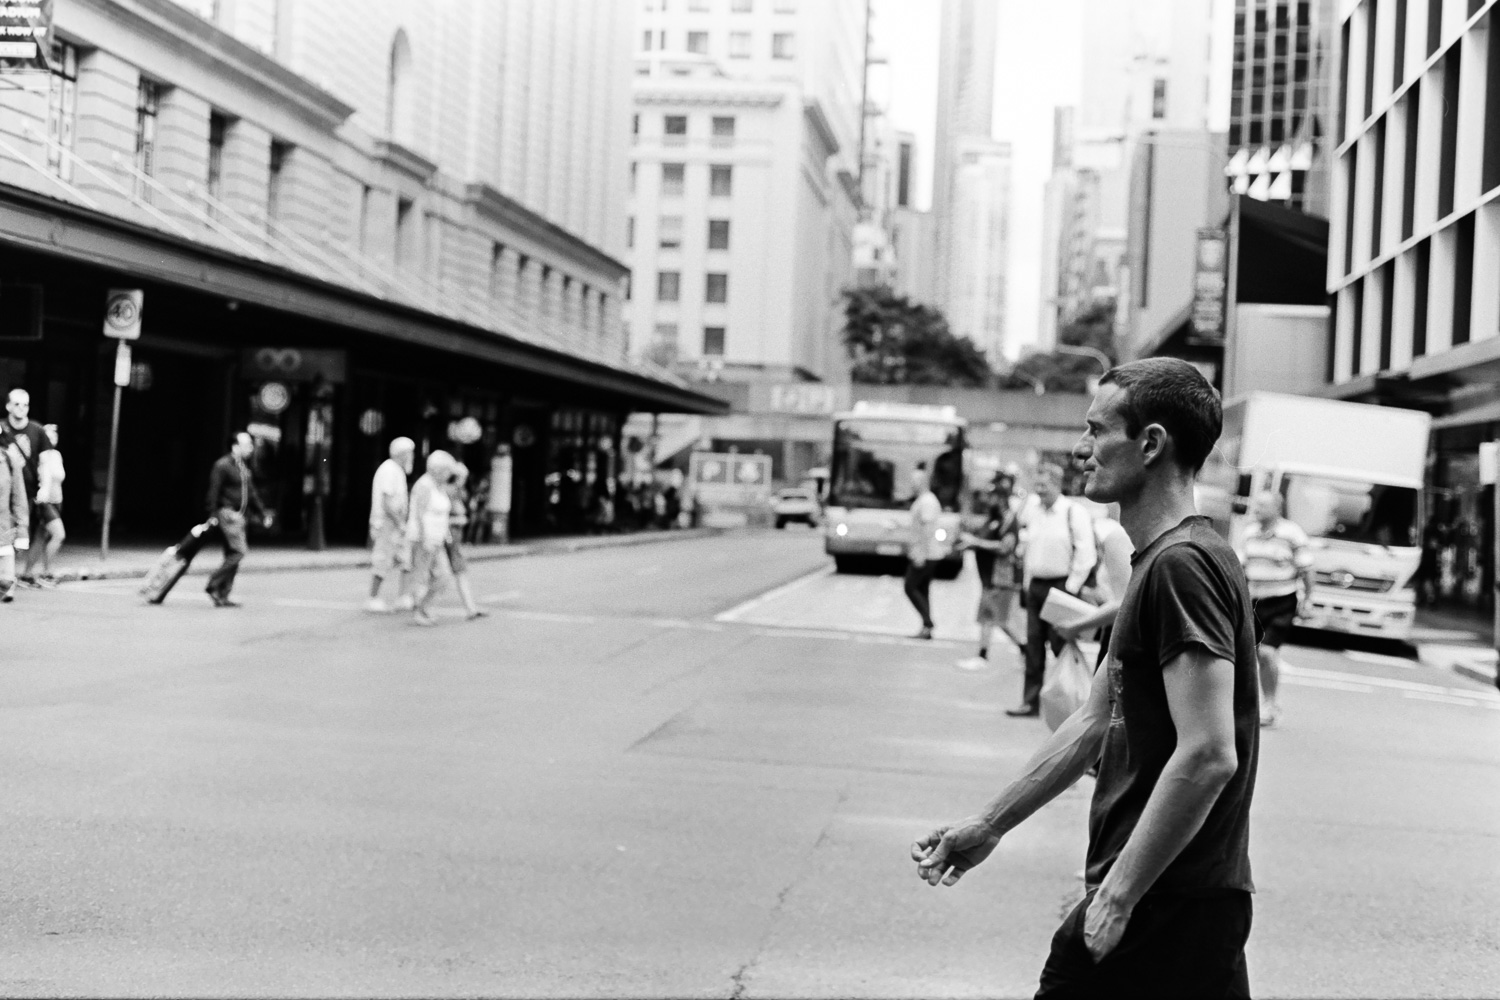 50mm street photo on Fuji Acros.